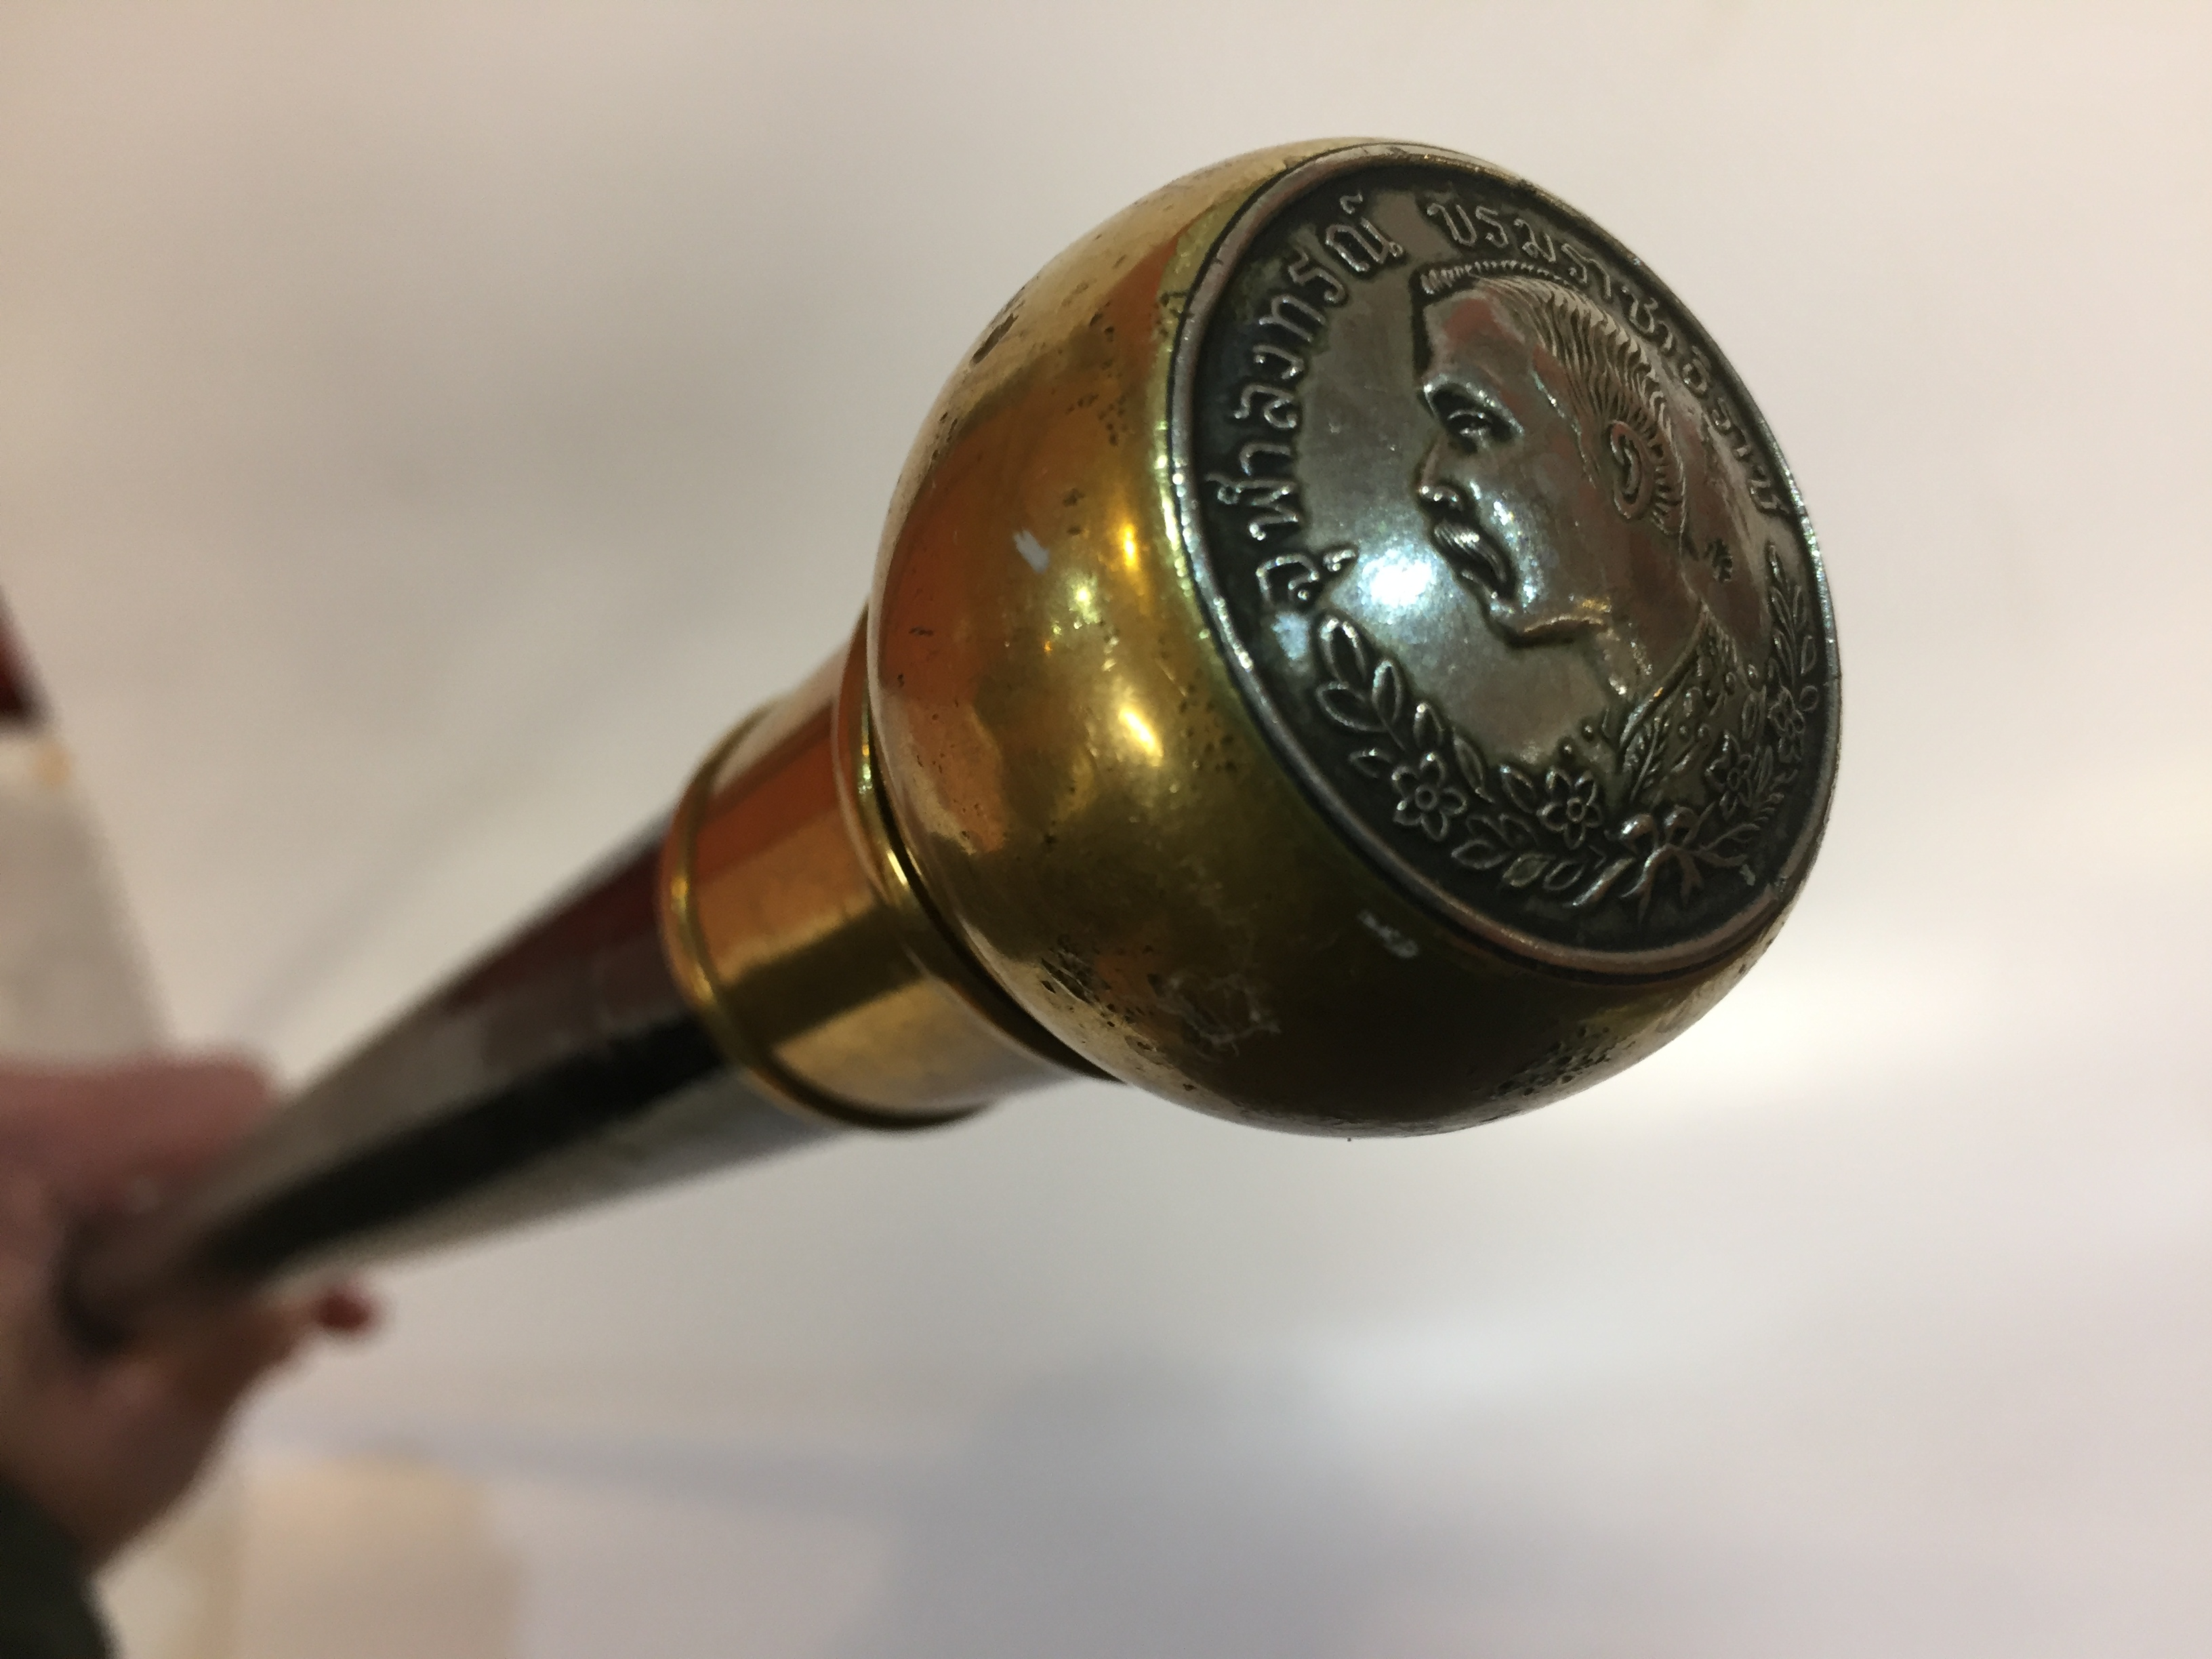 Lot 12 - WALKING STICK WITH BRASS KNOB MOUNTED WITH THAI KING COIN